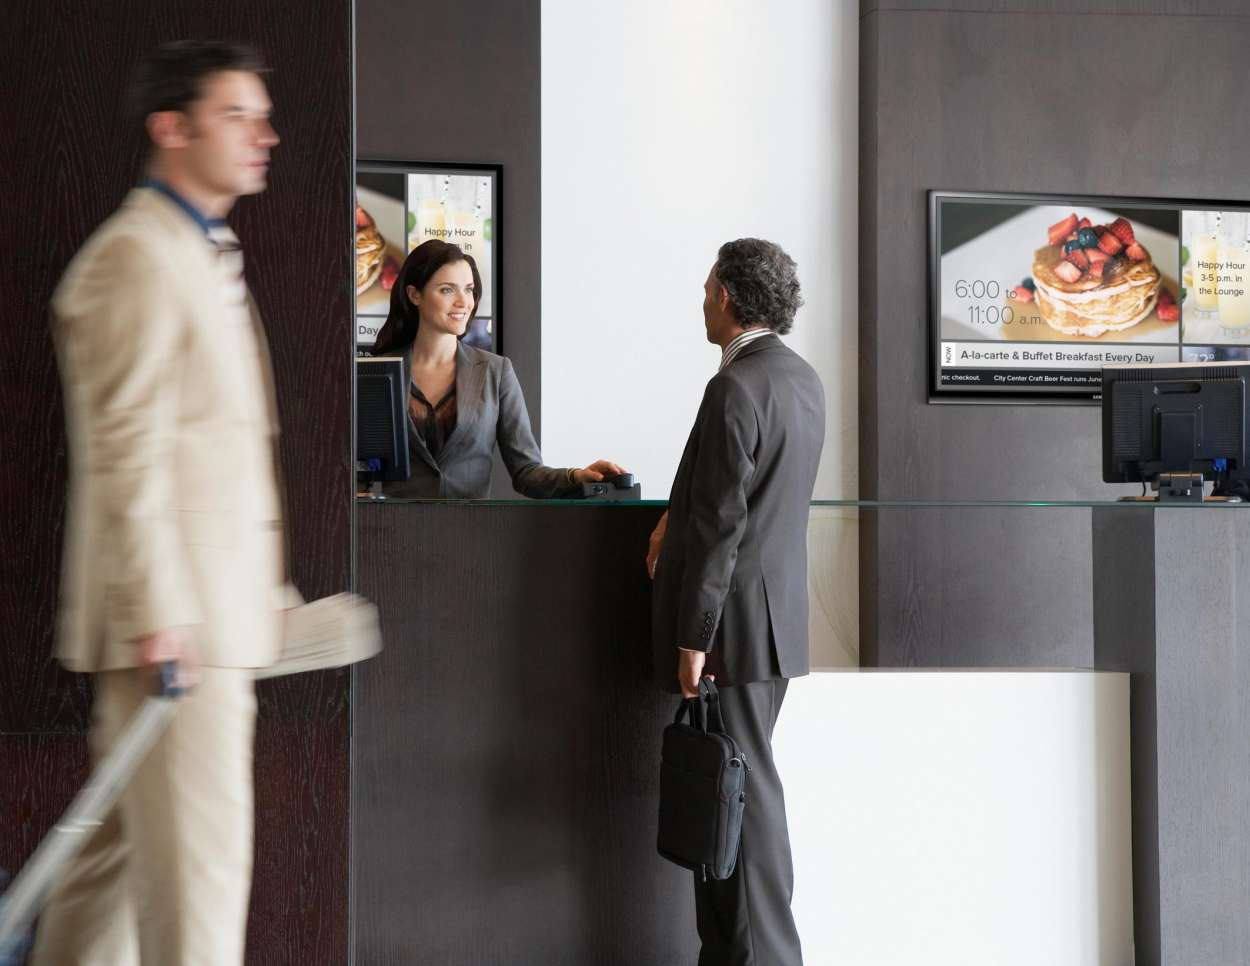 KONVERT™ TV for Restaurants & Hospitality